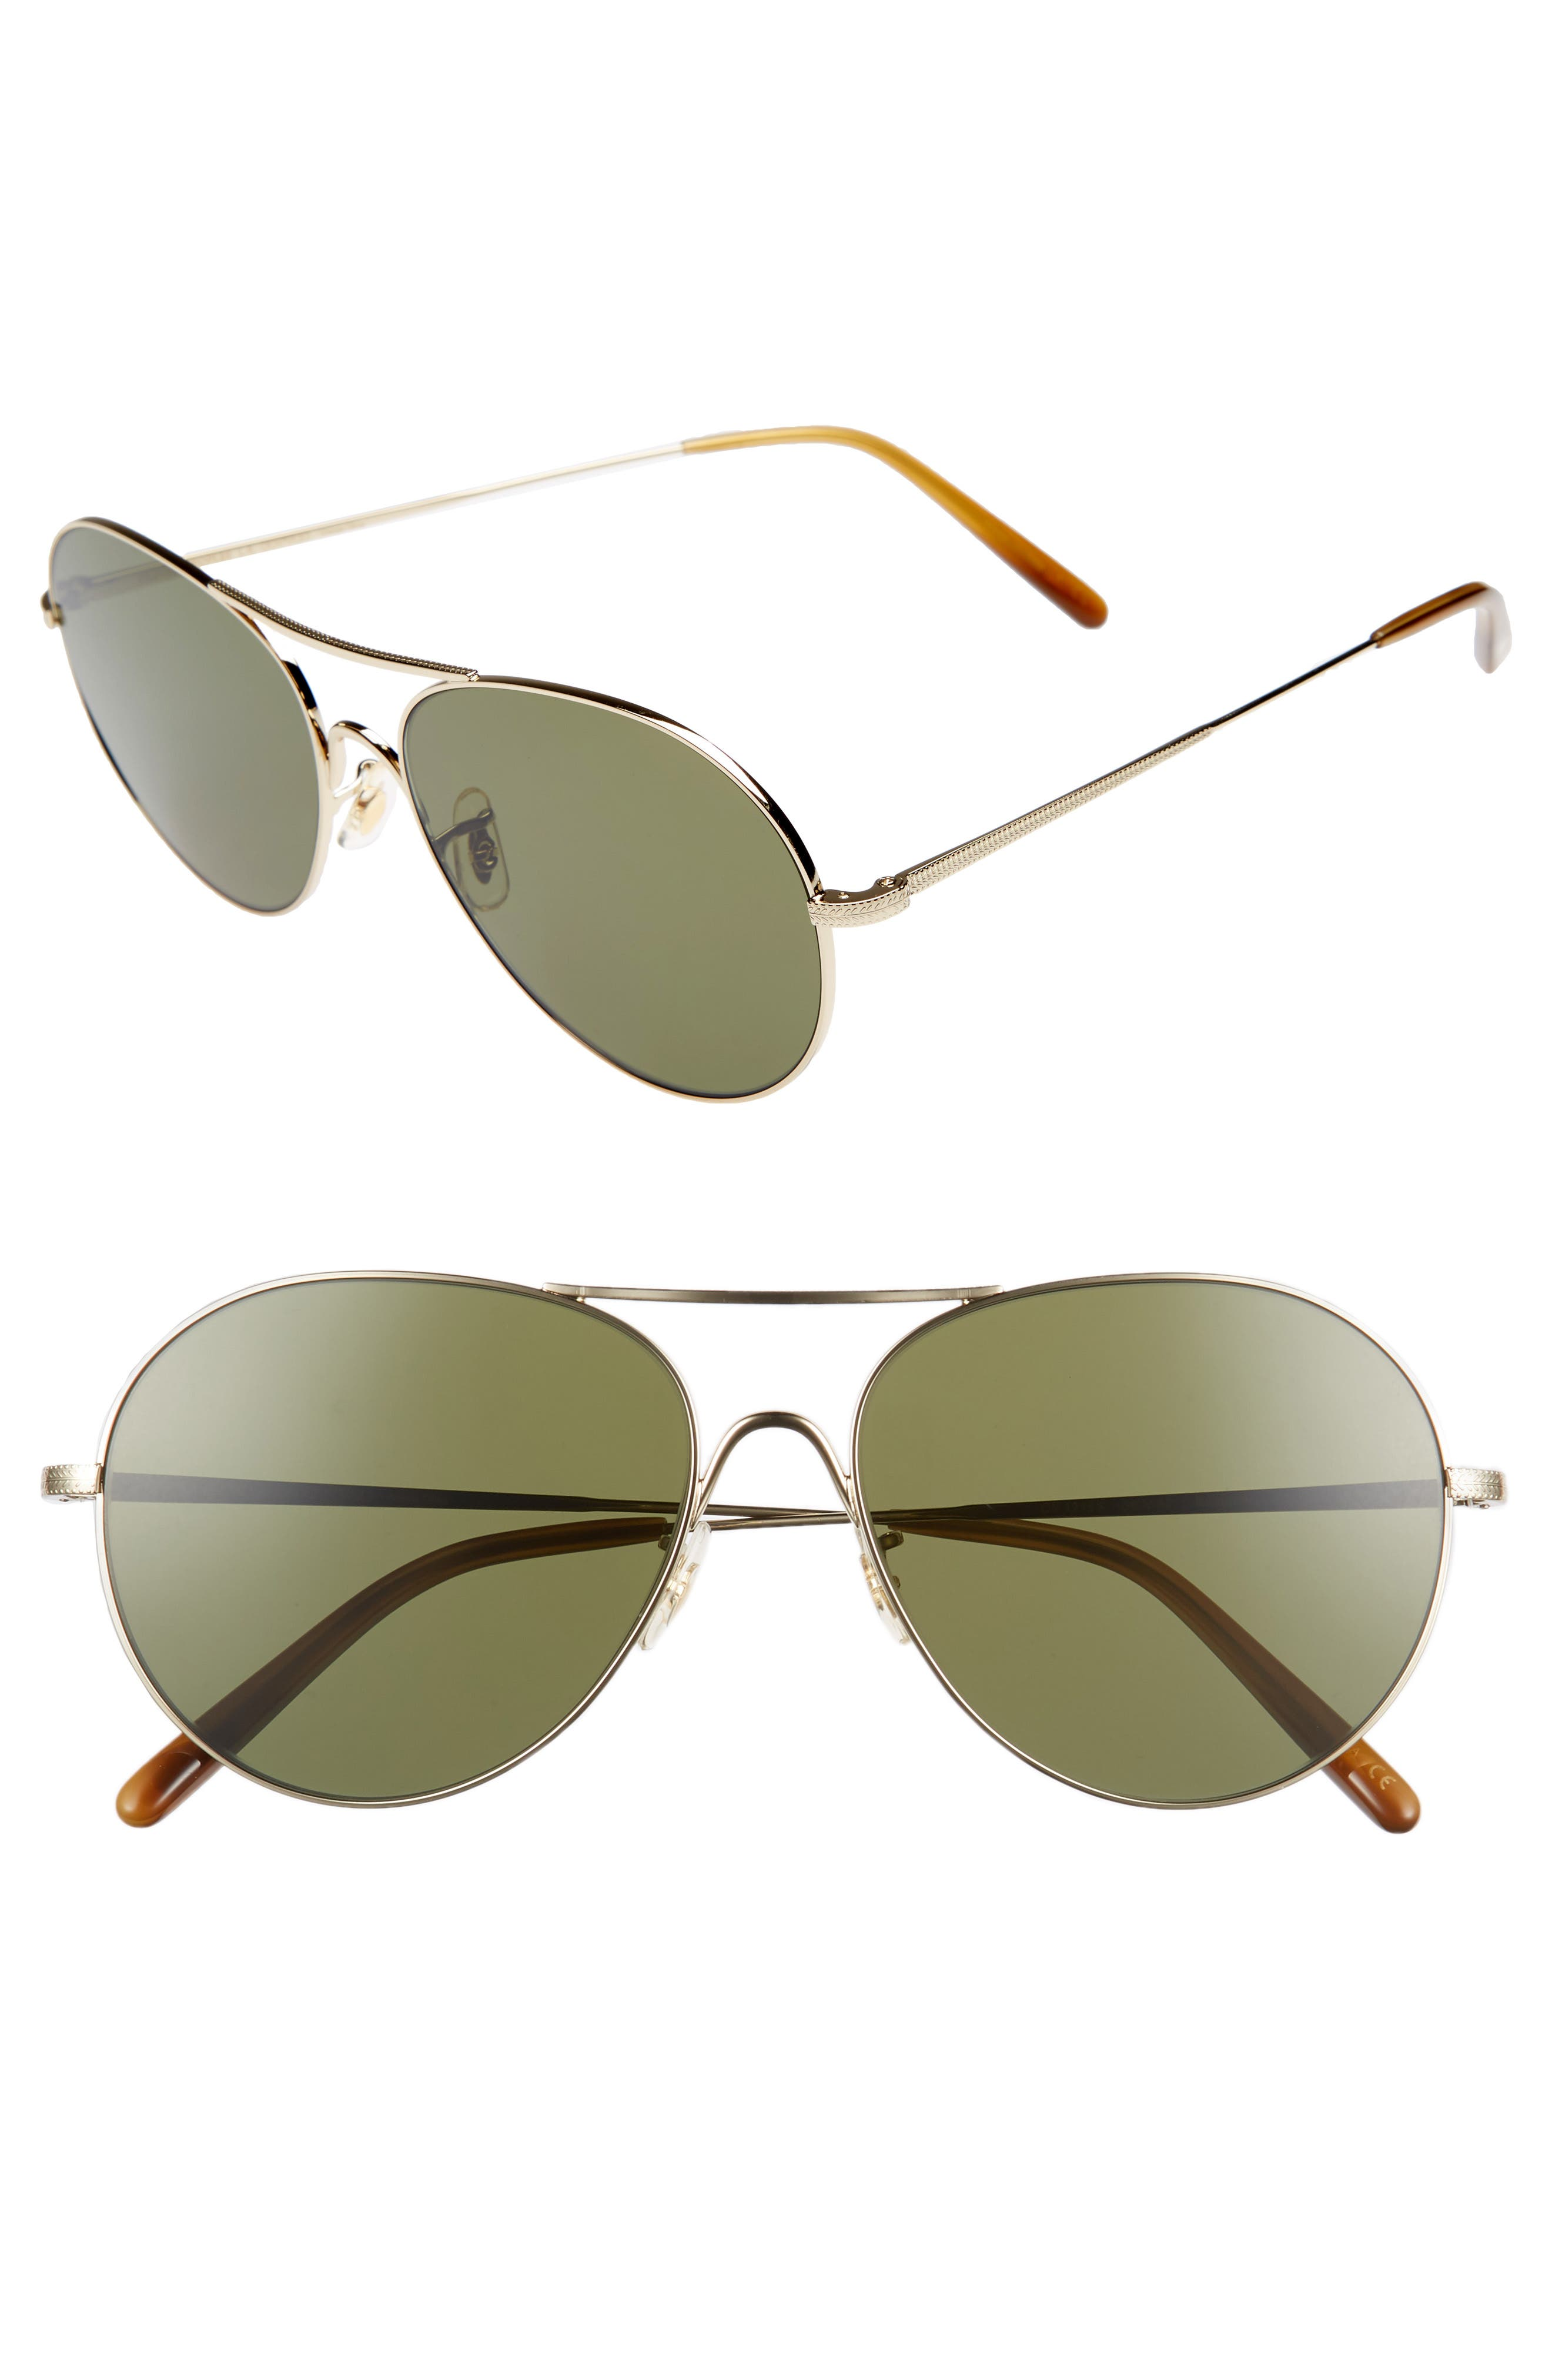 Oliver Peoples Rockmore 5m Aviator Sunglasses - Gold/ Green